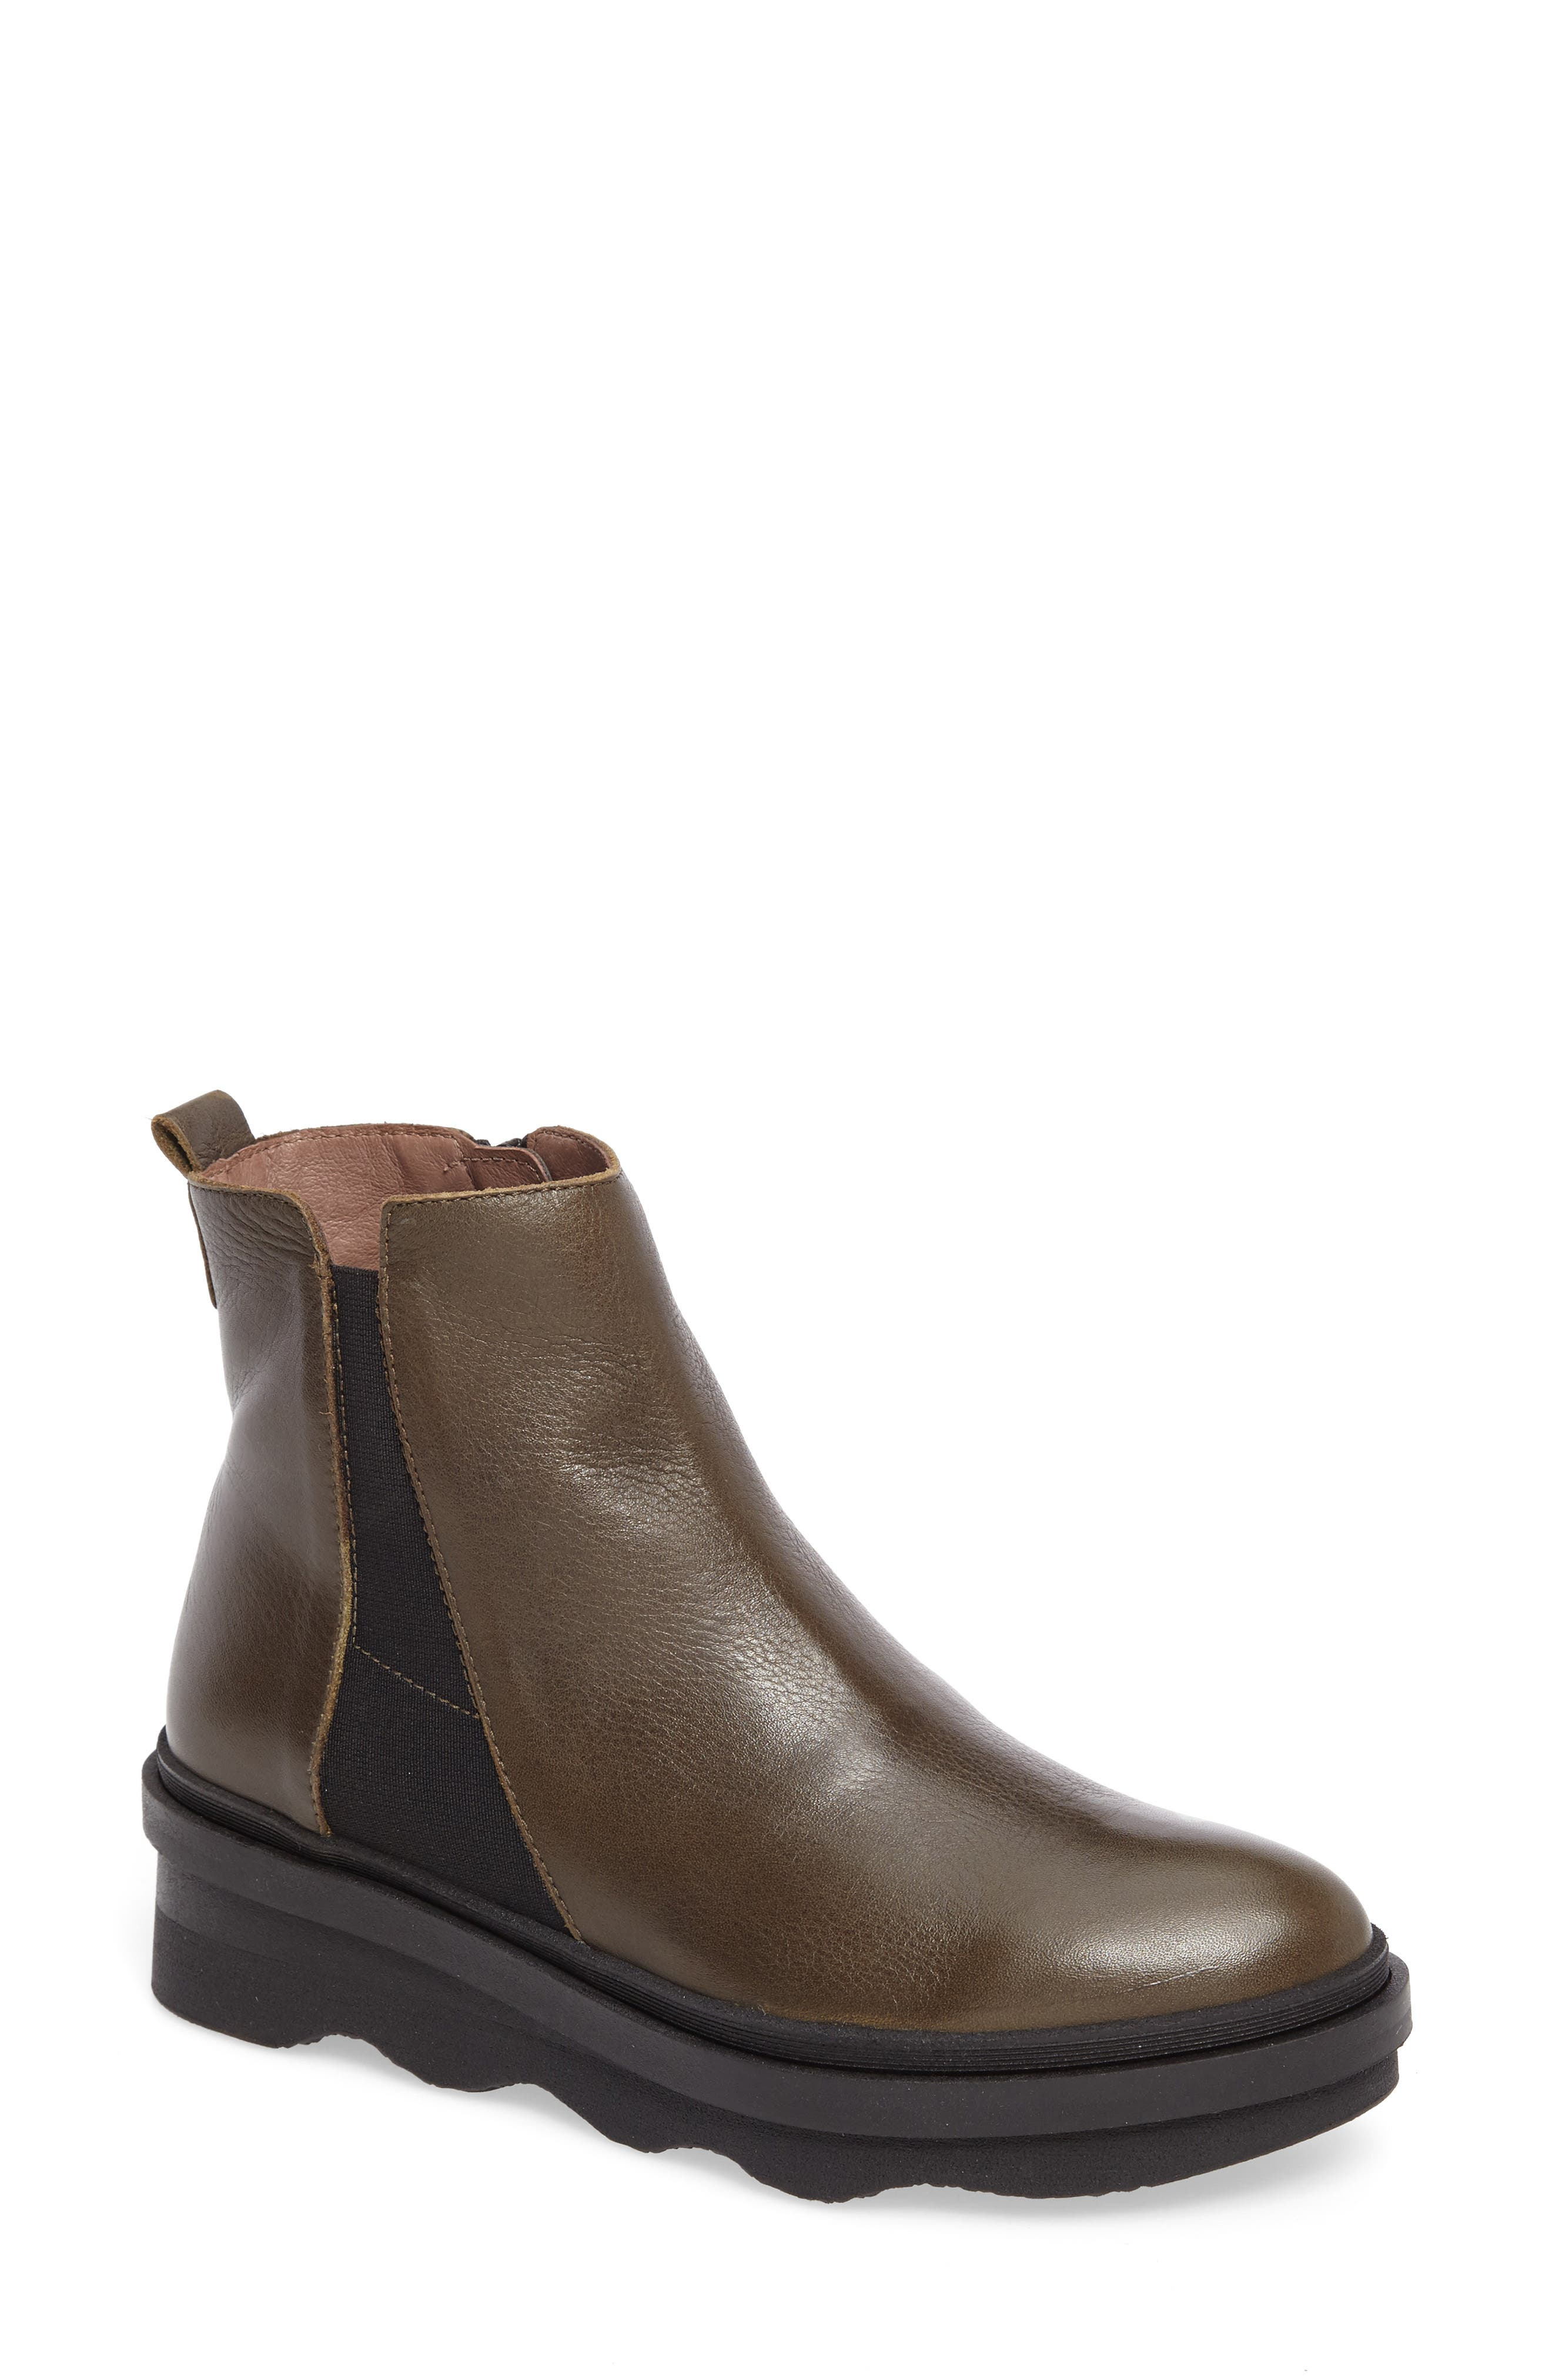 Platform Chelsea Bootie,                             Main thumbnail 1, color,                             Khaki Leather